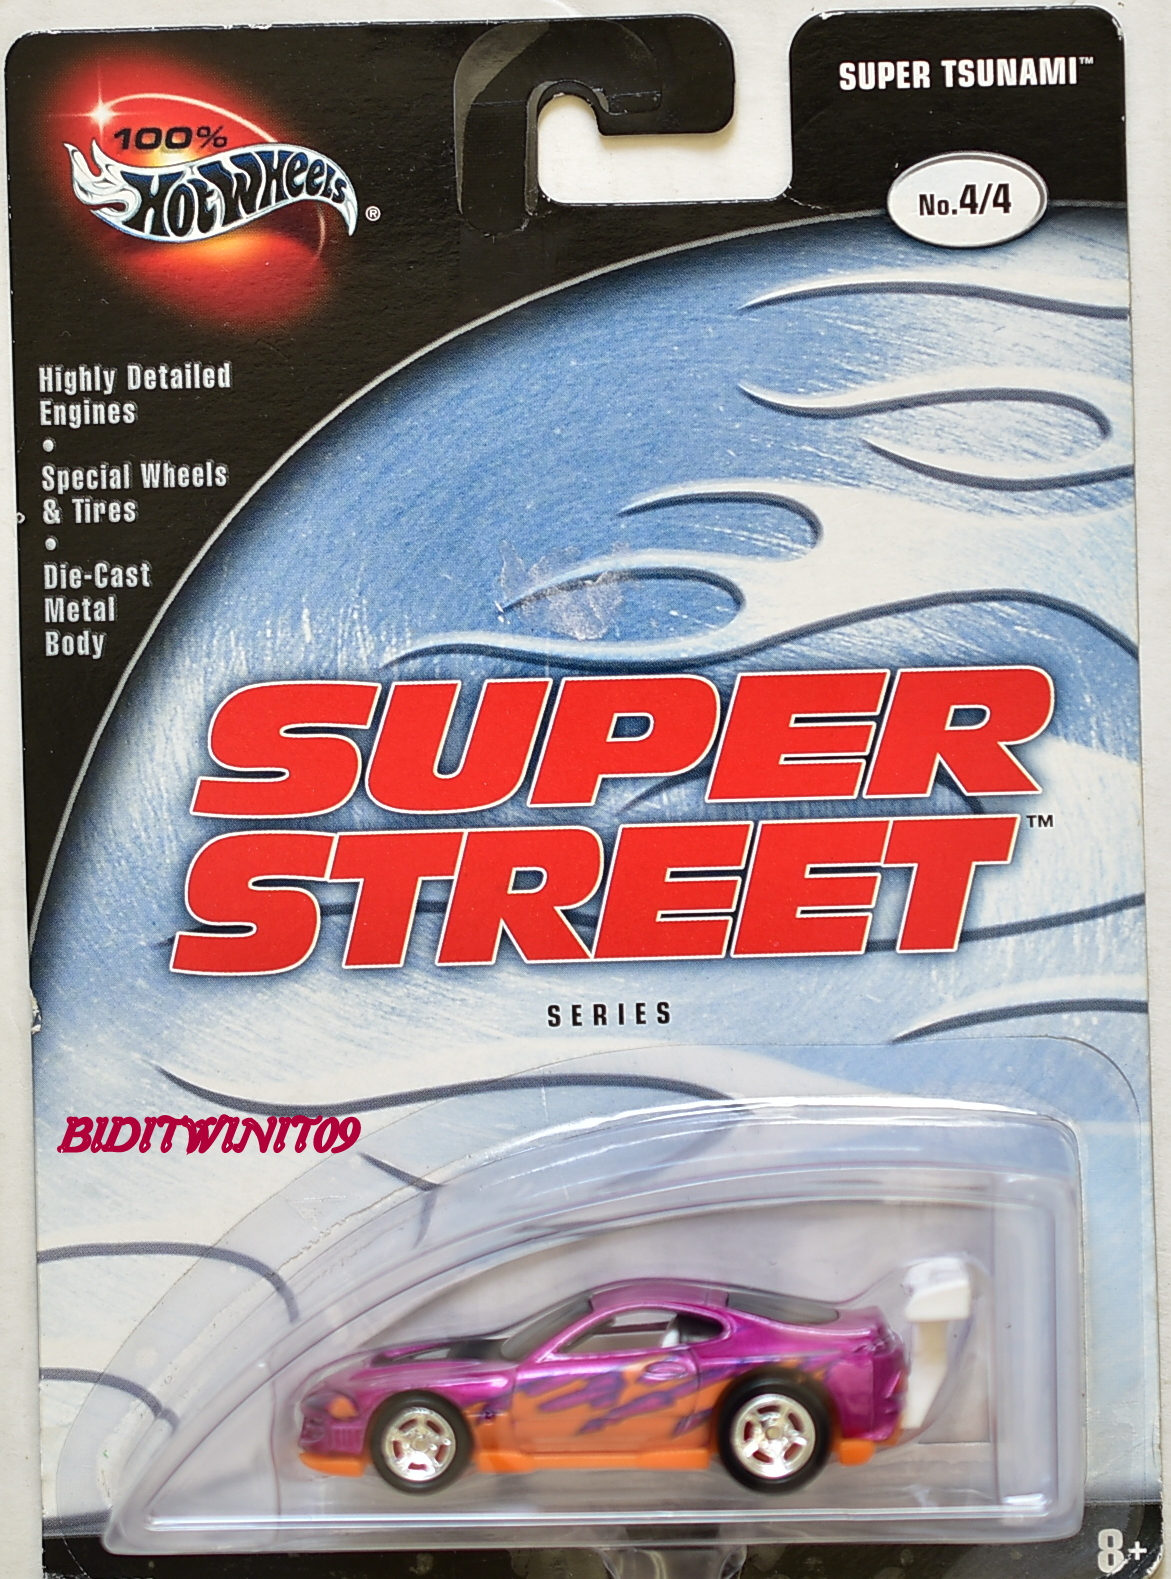 HOT WHEELS 100% SUPER STREET SERIES SUPER TSUNAMI #4/4 PURPLE E+